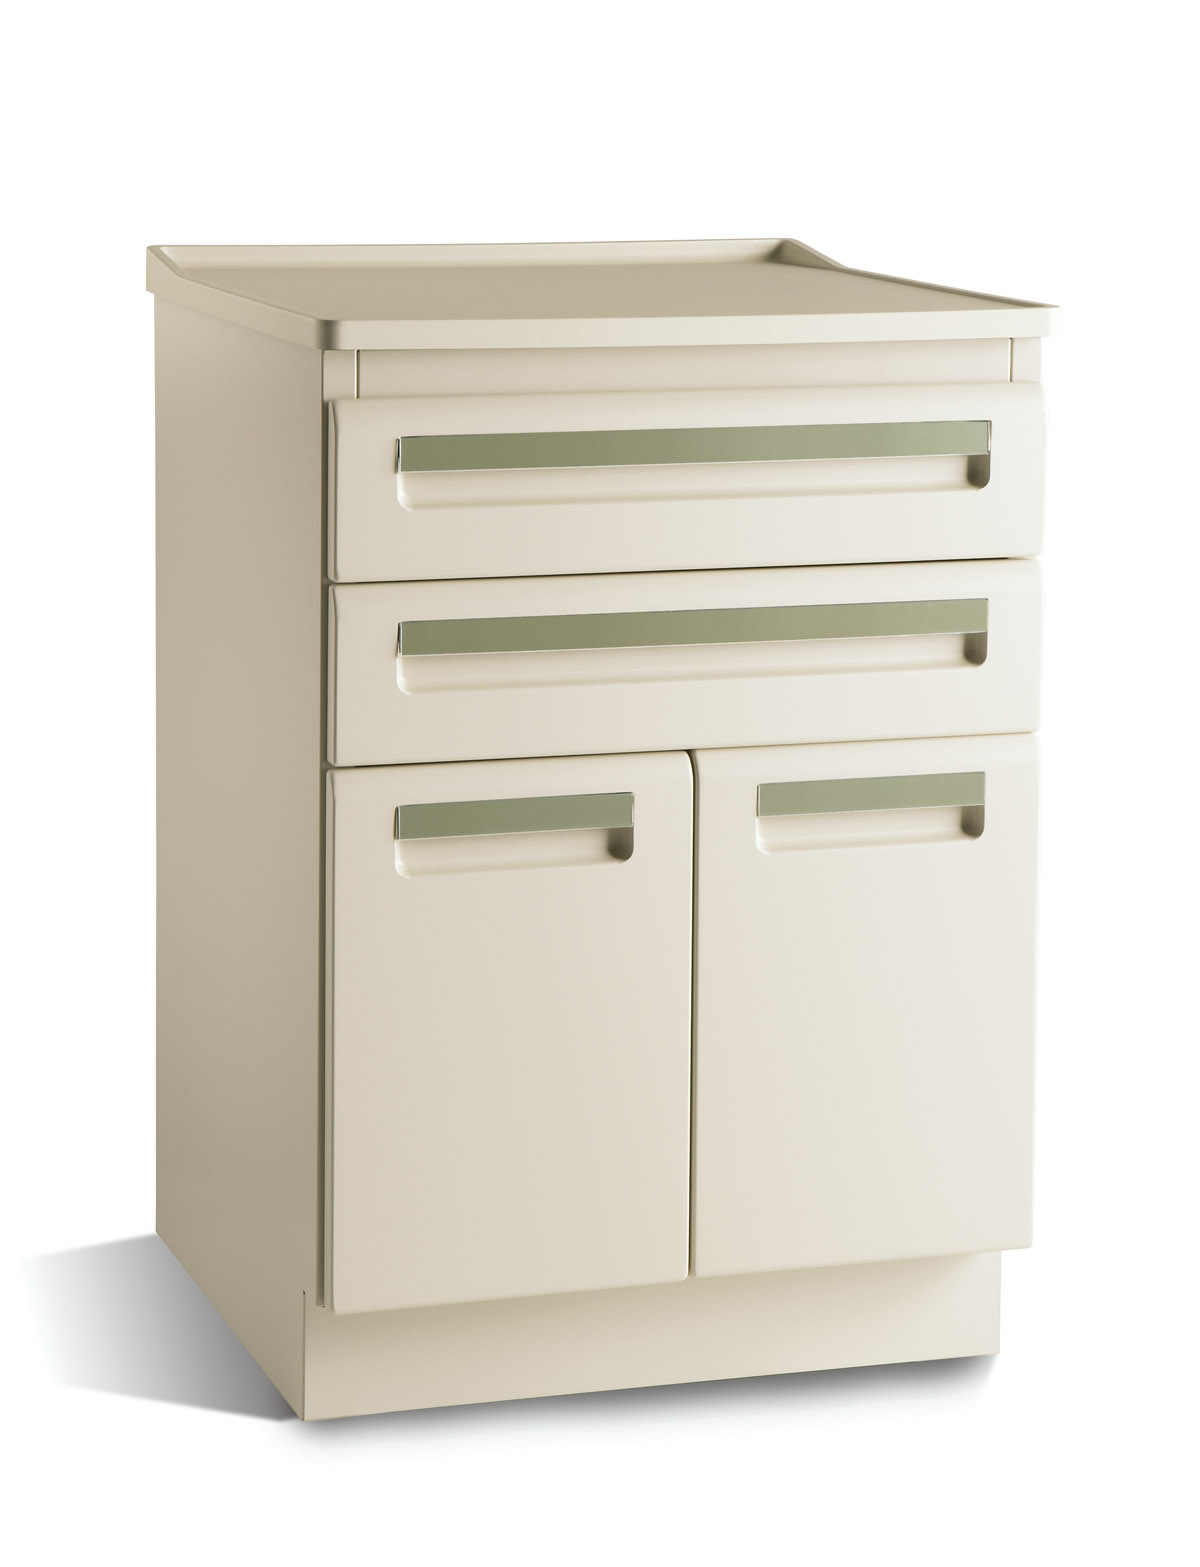 CABINET, TREATMENT, 24x18, 2 DR/2 DRW, BLUEBERRY